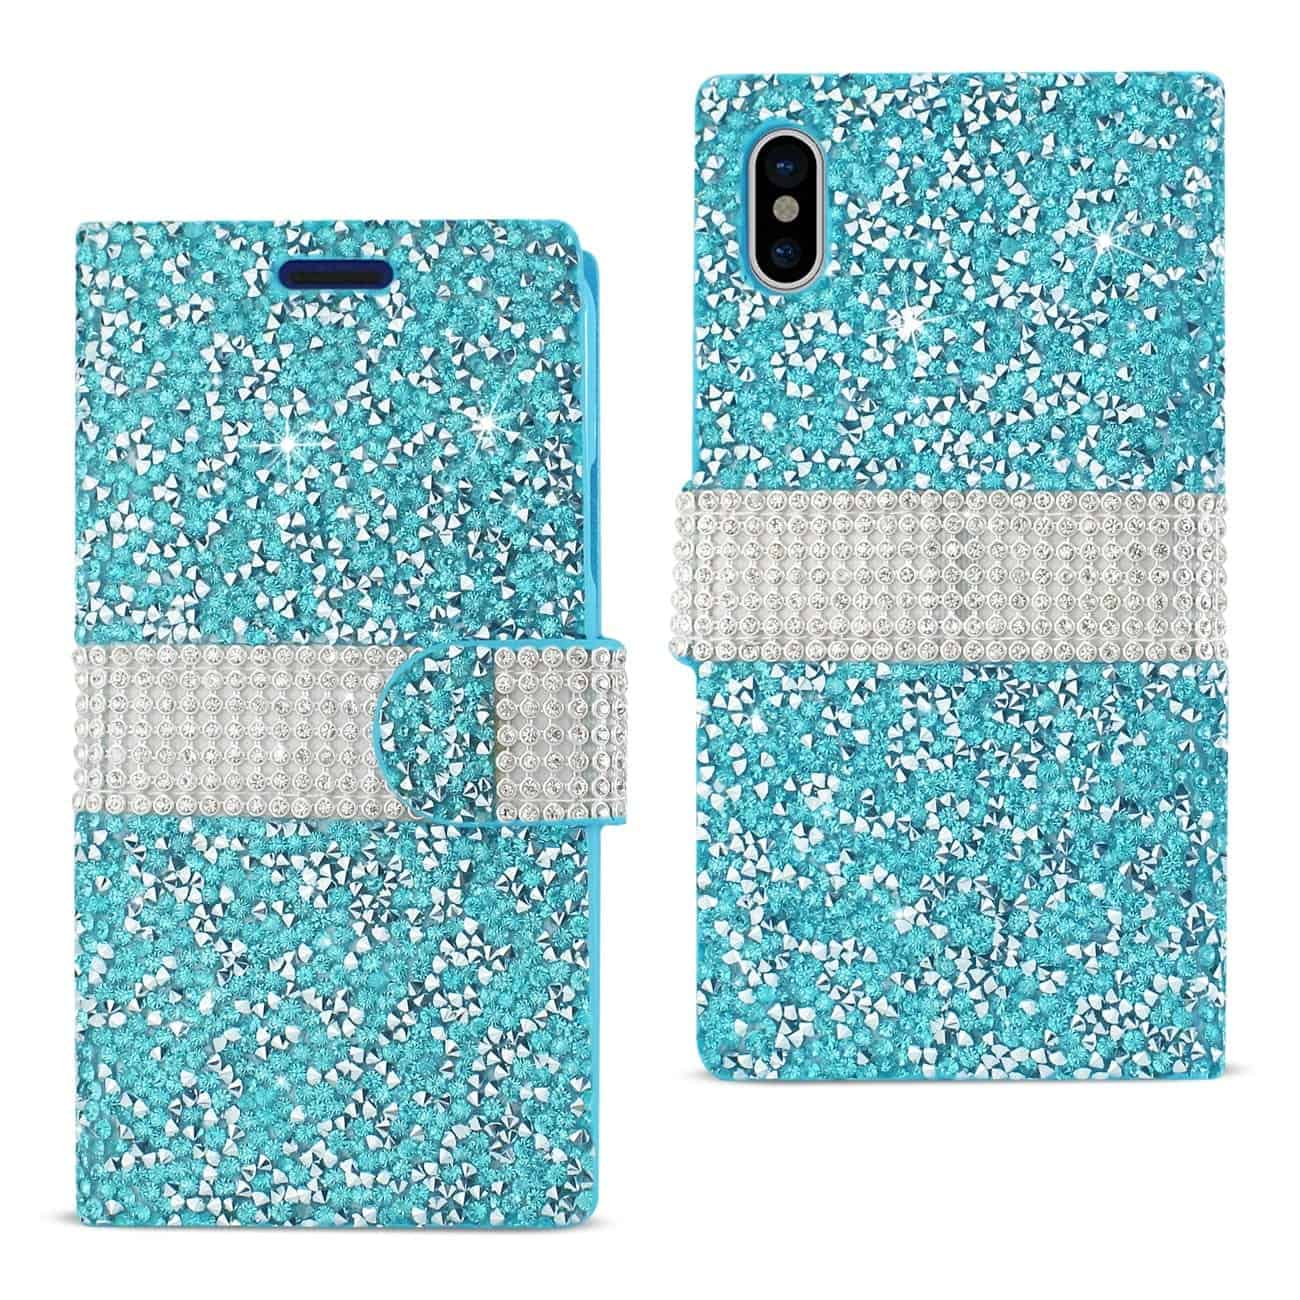 IPHONE X DIAMOND RHINESTONE WALLET CASE IN BLUE